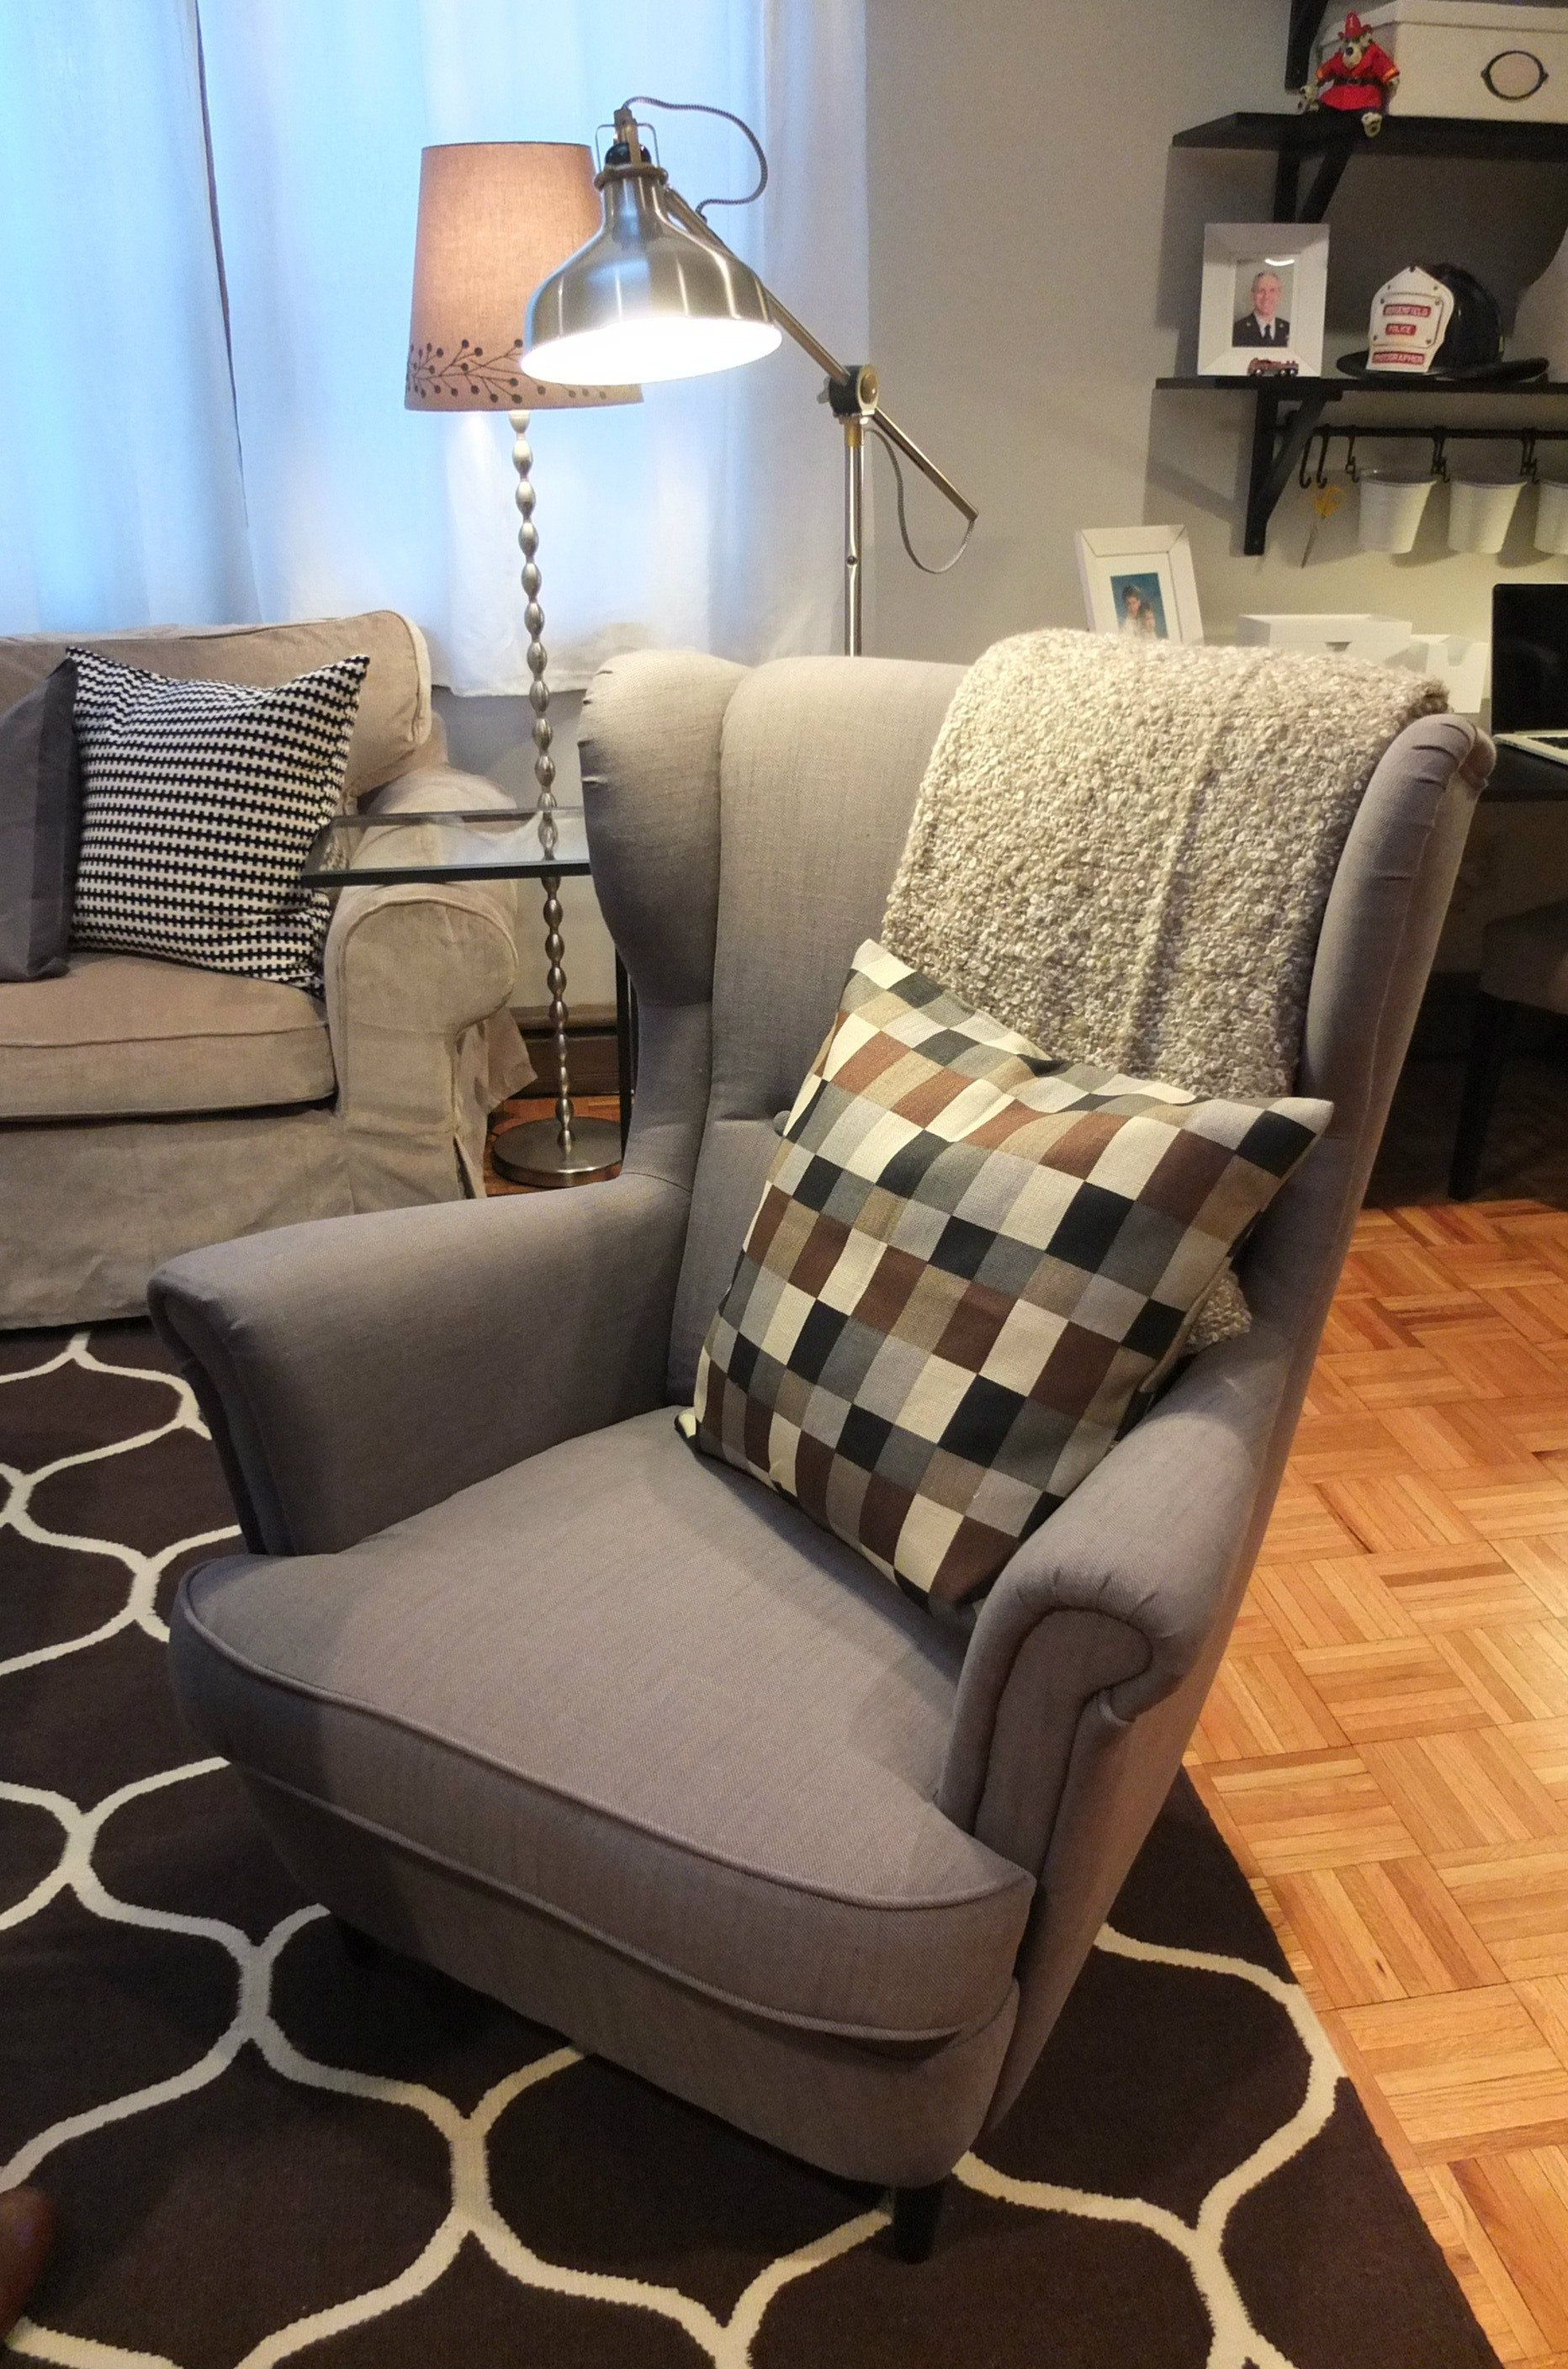 The Ikea Strandmon Wing Chair Is A Comfortable Piece With A Classic Look Great For Reading And